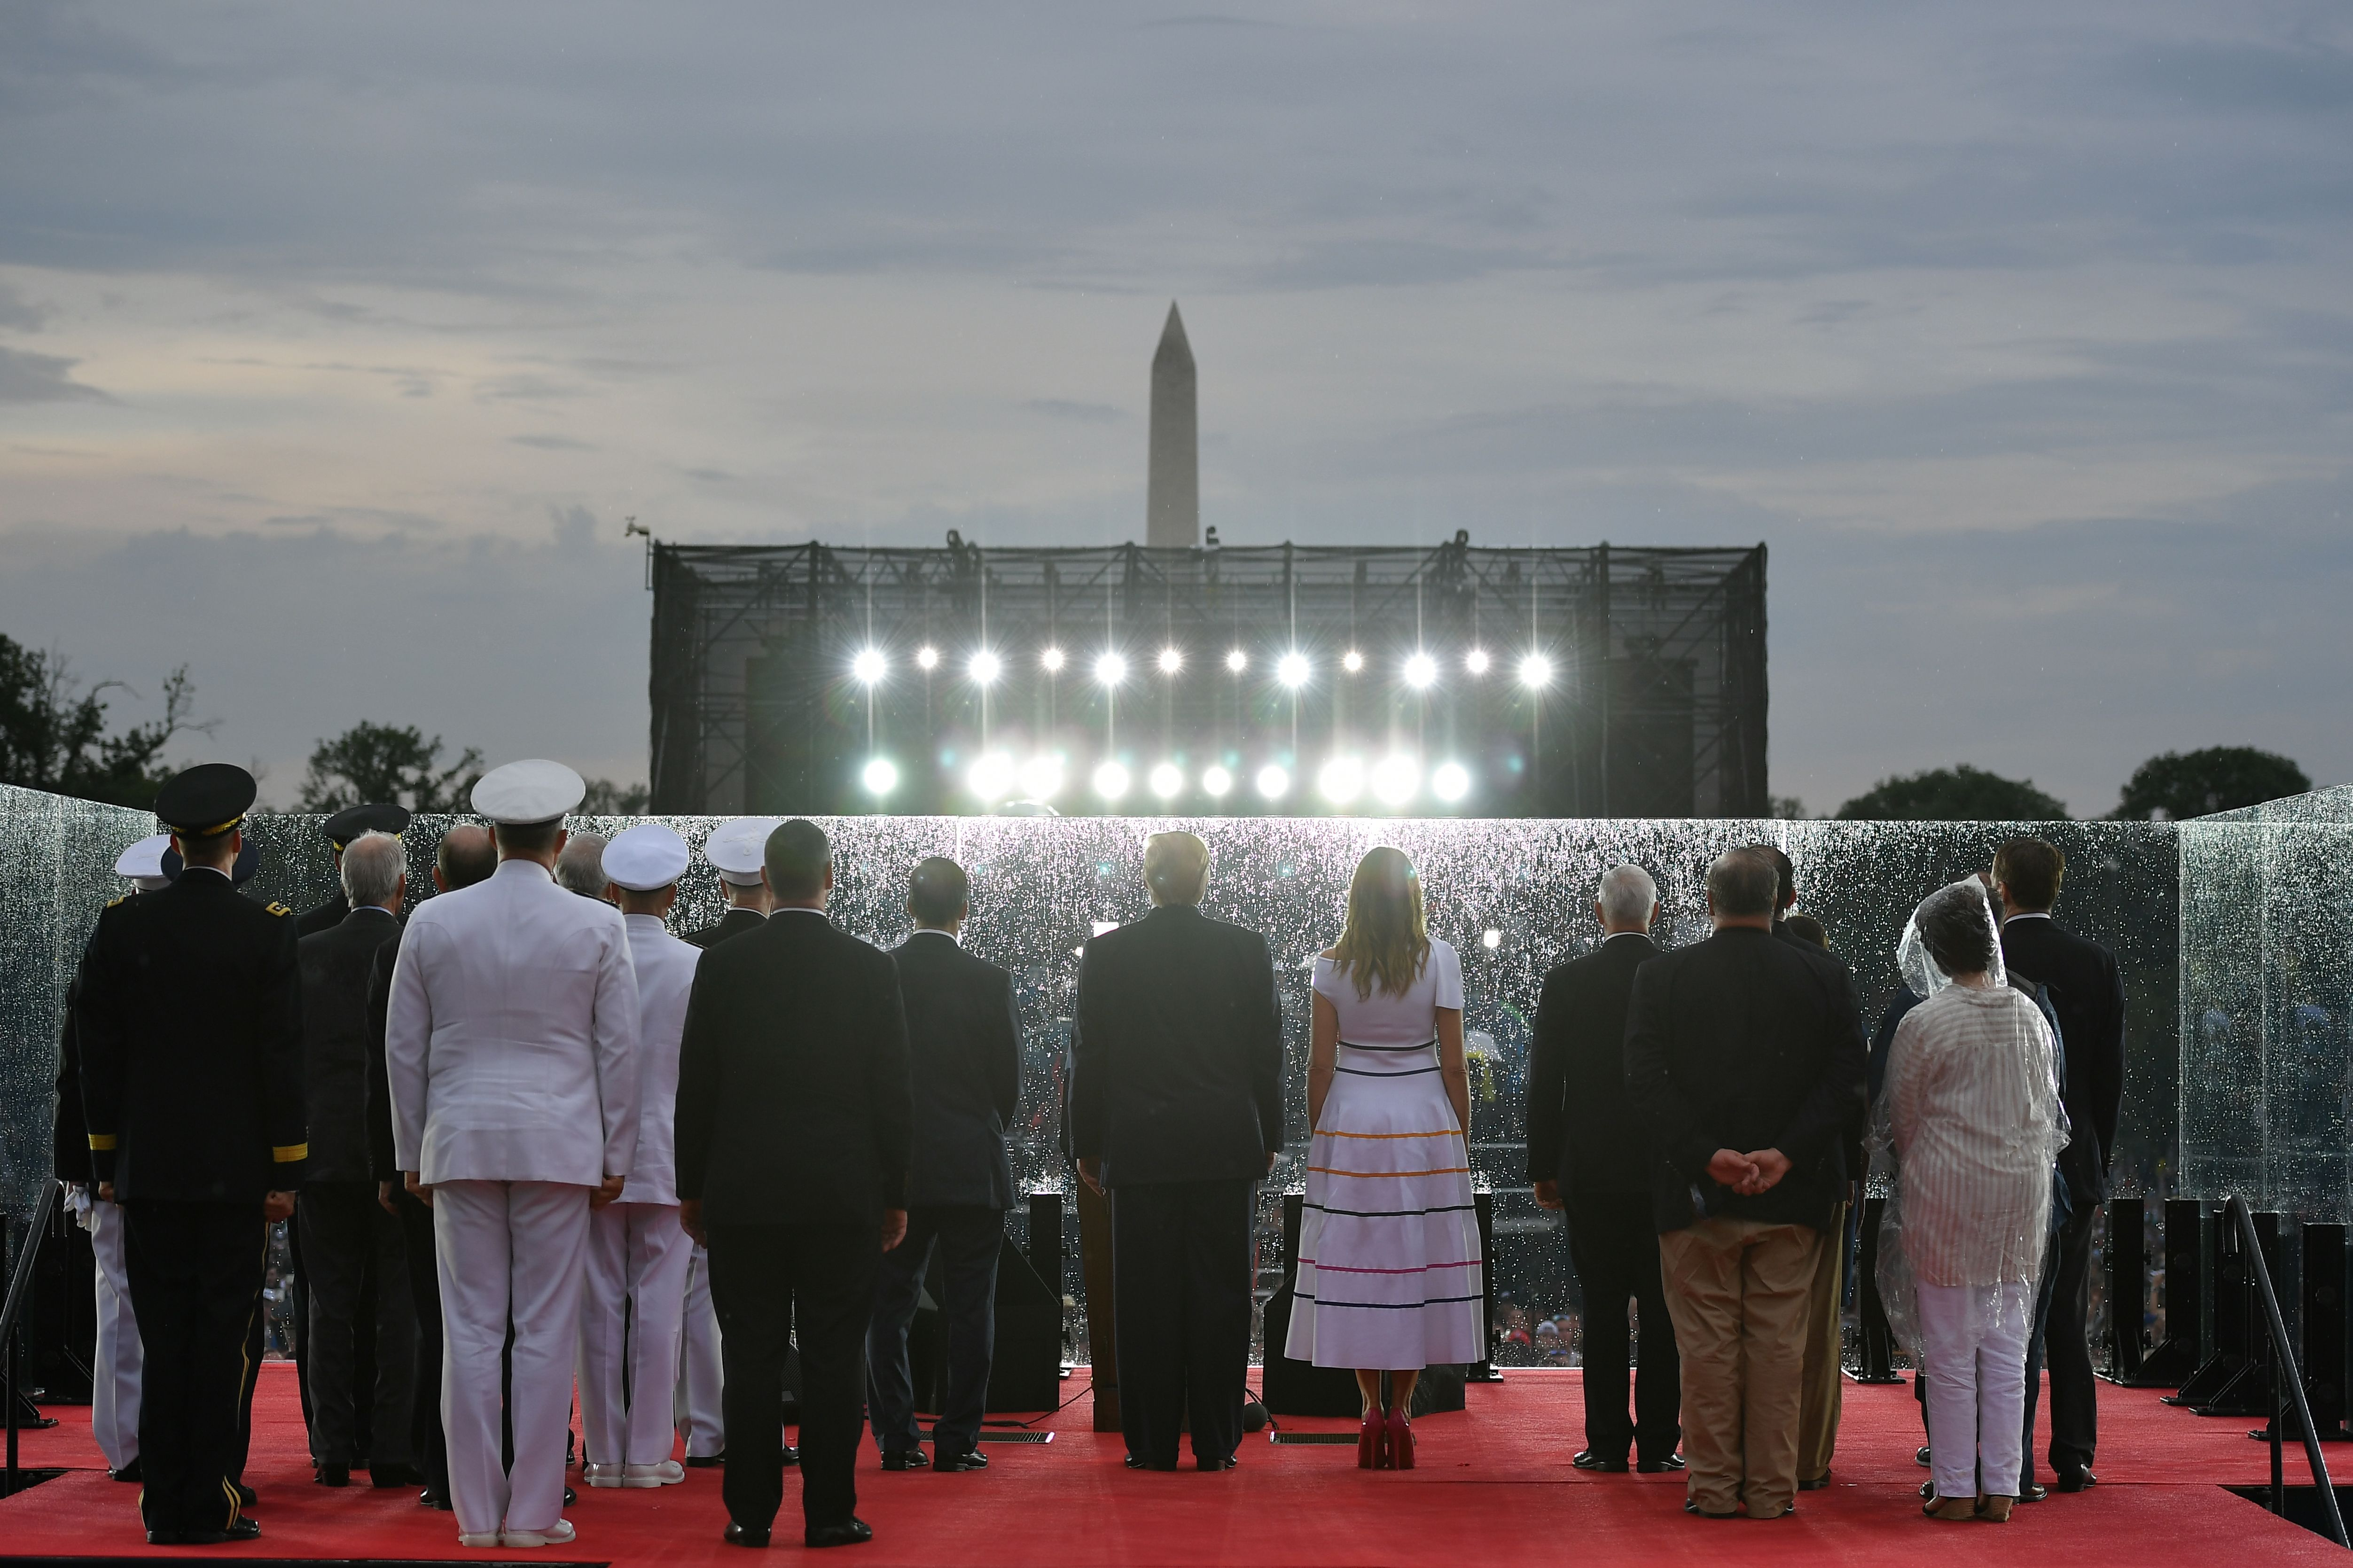 """US President Donald Trump (C-L) and First Lady Melania Trump stand onstage with others during the """"Salute to America"""" Fourth of July event at the Lincoln Memorial in Washington, DC, July 4, 2019. (Photo by MANDEL NGAN / AFP)        (Photo credit should read MANDEL NGAN/AFP/Getty Images)"""